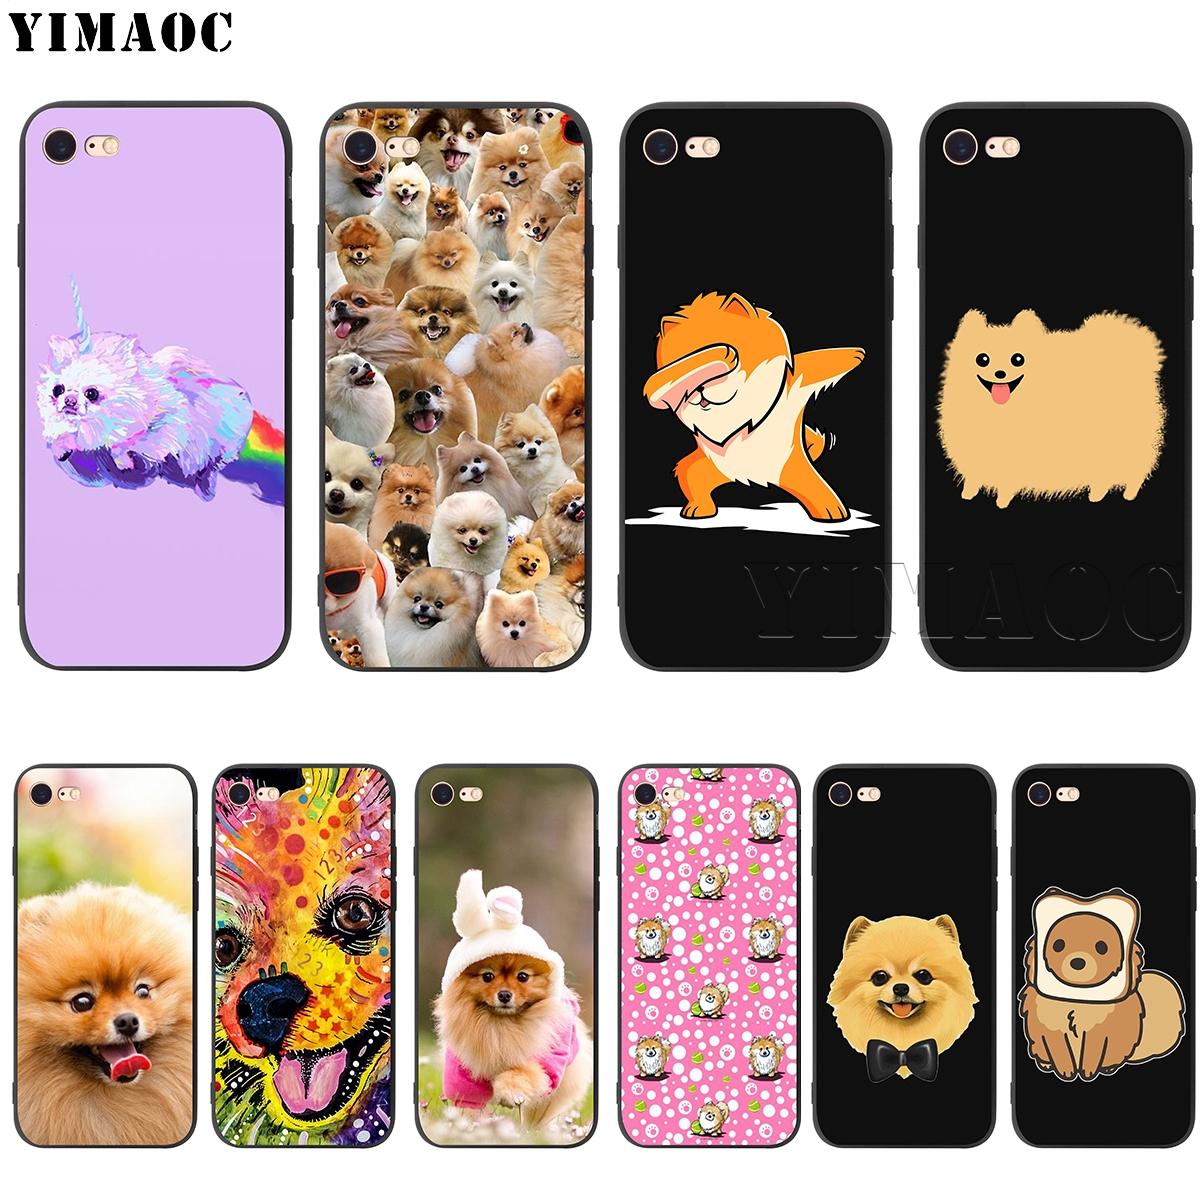 Faithful Lvhecn 5 5s Se 6 6s Phone Cover Cases For Iphone 7 8 Plus X Xs Max Xr Soft Silicone Rubber Naruto Japanese Manga Anime Fitted Cases